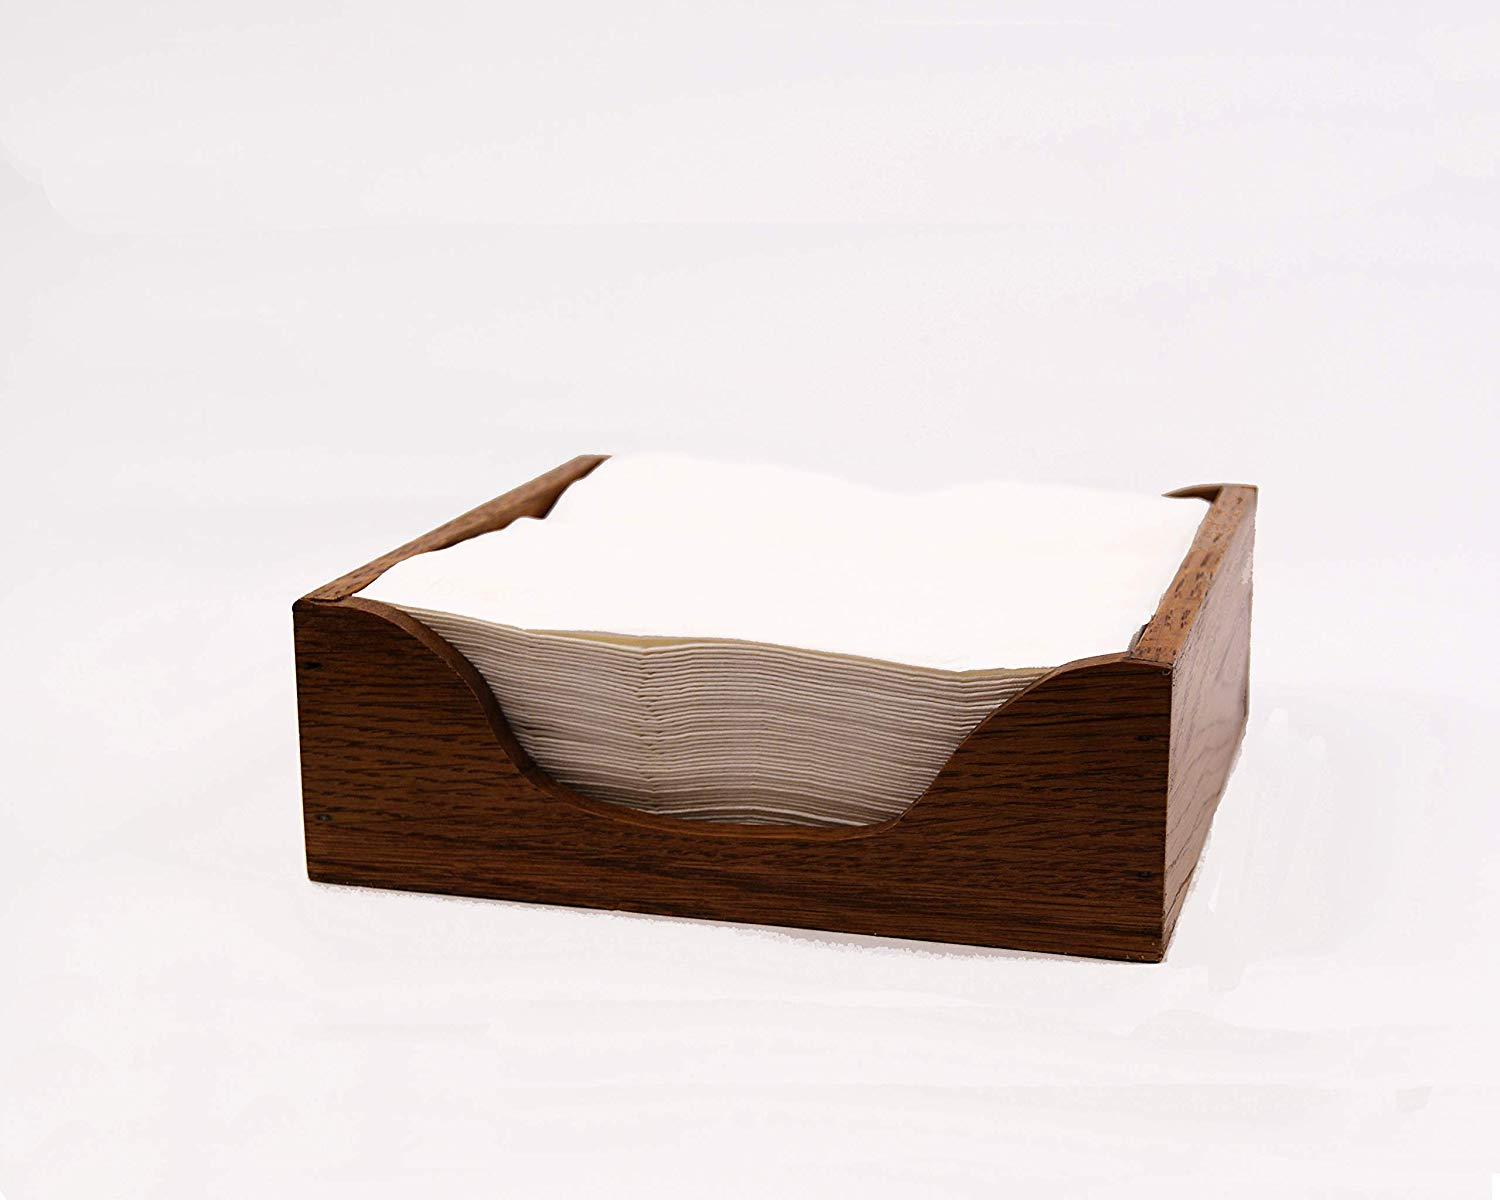 Cheap Dinner Napkin Holder Find Dinner Napkin Holder Deals On Line At Alibaba Com